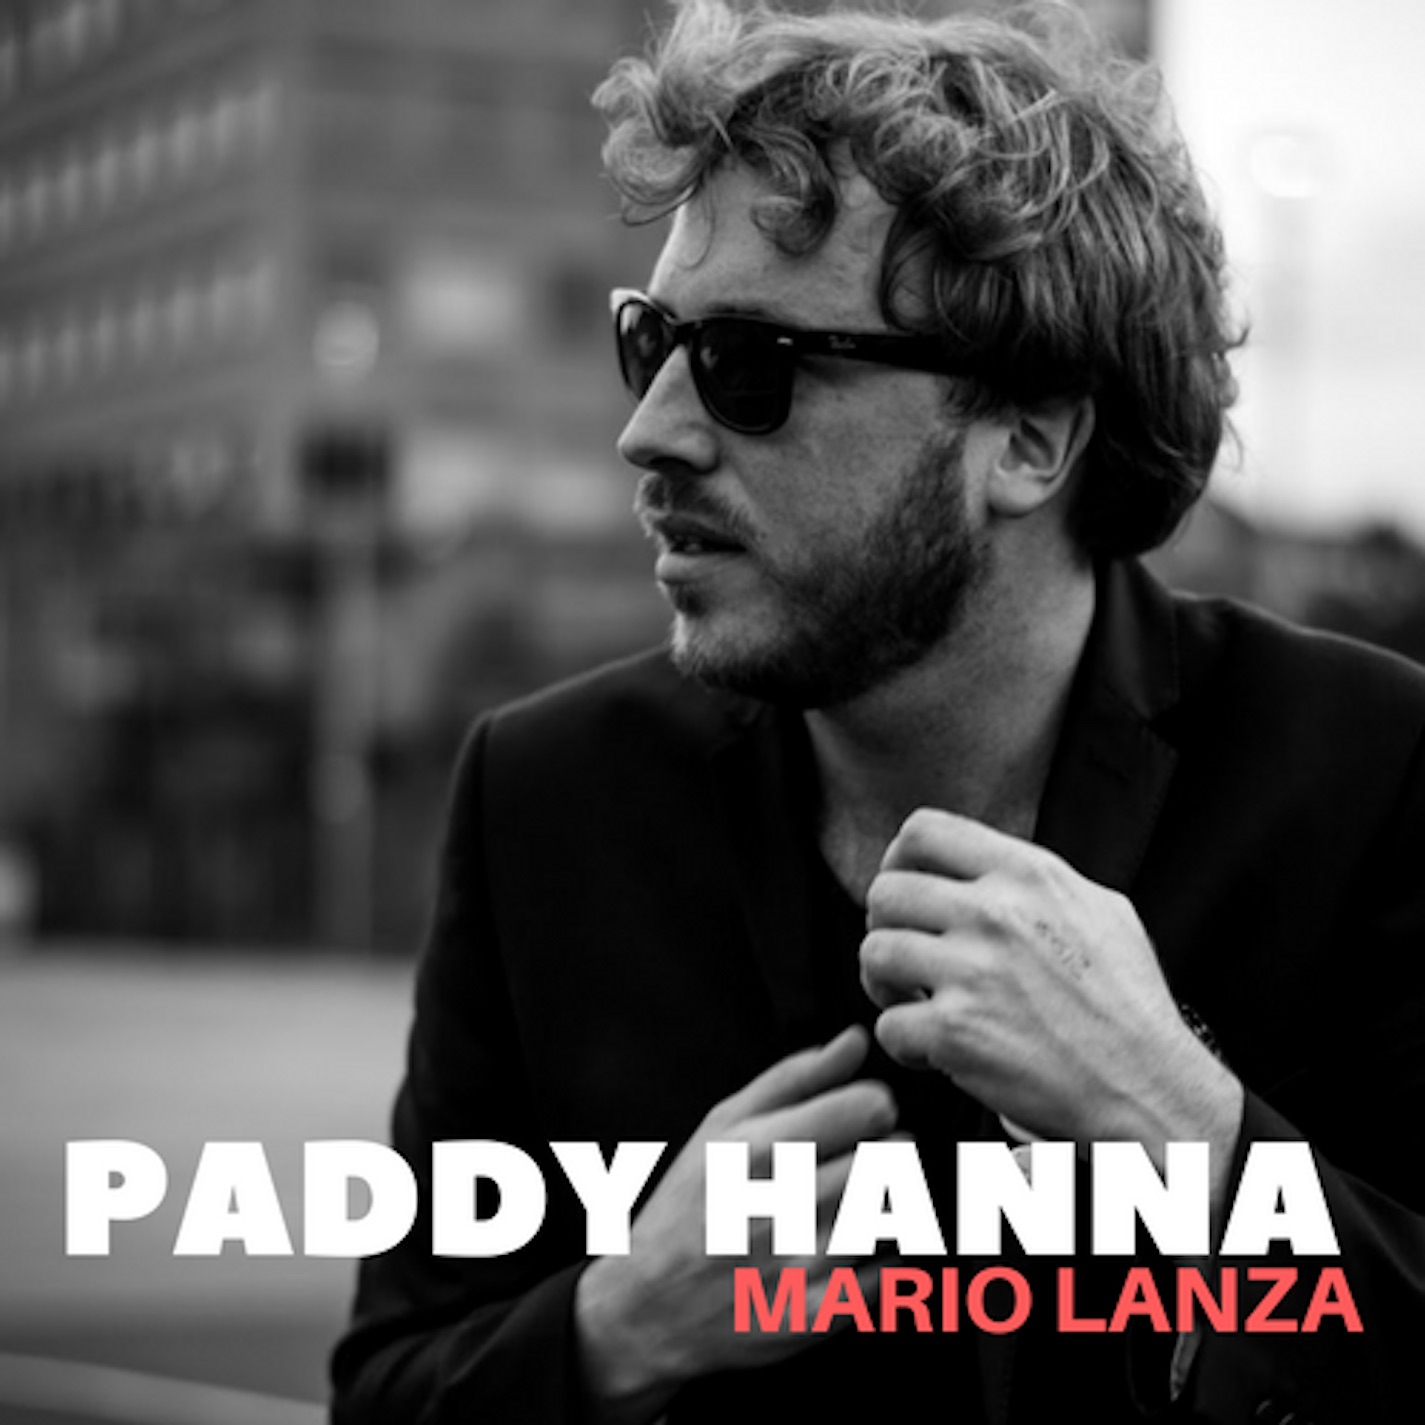 "Dublin-based songwriter Paddy Hanna today reveals ""Mario Lanza"", another track from his forthcoming album due for release in 2018.           The upbeat tempo of the song is proceeded by a more serious experience, as Paddy explains -         My Father, not too long ago, went through a terrible illness which left him in a coma for two weeks. The emotional strain of this event really beat me down, I repressed it in some ways, particularly in my writing. While struggling to deal with the strain I began listening through some rough demos I had, one of which was a minute-long ditty about Mario Lanza, an American Tenor from the early 20th century. I decided to finish it off and realized very quickly I was channelling my pain through this particular track. Mario Lanza, in essence, became my Dad, and through him I could express all of the emotions I had repressed, which is why the song is tinged with a sorrowful joy   .           It's the follow up to 'Bad Boys', a baroque cut of shimmering, intelligent pop.     2018 will see the release of Hanna's sophomore album via Strange Brew Records, produced by his new collaborator Daniel Fox. Following on from the Scott Walker-esc pomp of Austria and Underprotected, Fox has added a whole new orchestral element to his music, along with contributions from members of Girl Band, Saint Sister, Tandem Felix, Cian Nugent and the Cosmos and the Trinity Orchestra.         Hanna played the HWCH festival and continues with dates in November and December accompanied by a live band featuring Adam Faulkner and Daniel Fox (Girl Band), along with guitarist Paddy Ormond (Jetsetter/Postcard Versions)."